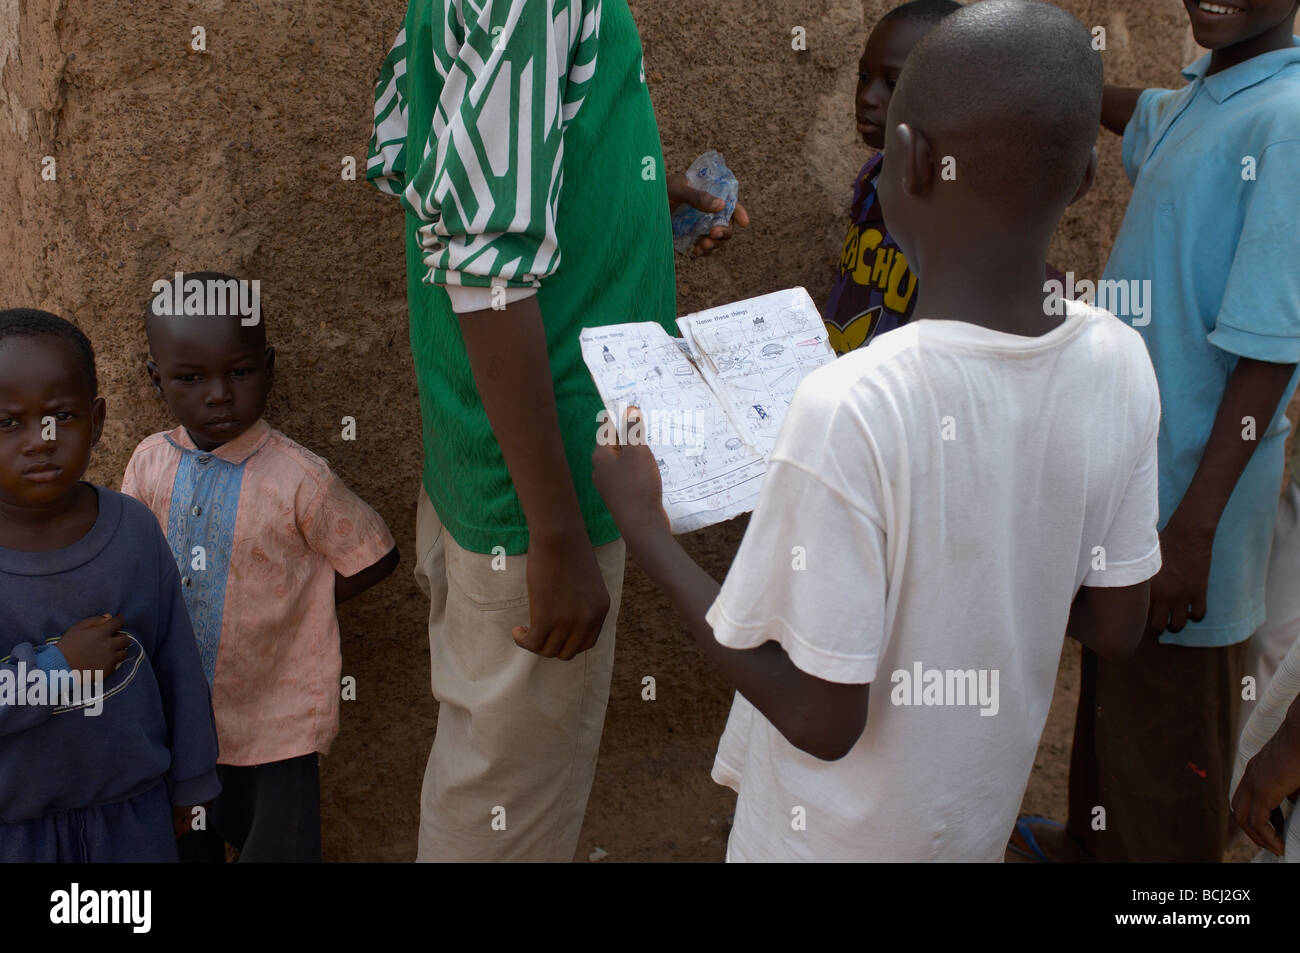 child reading exercise book in street in village in Tamale, Ghana - Stock Image